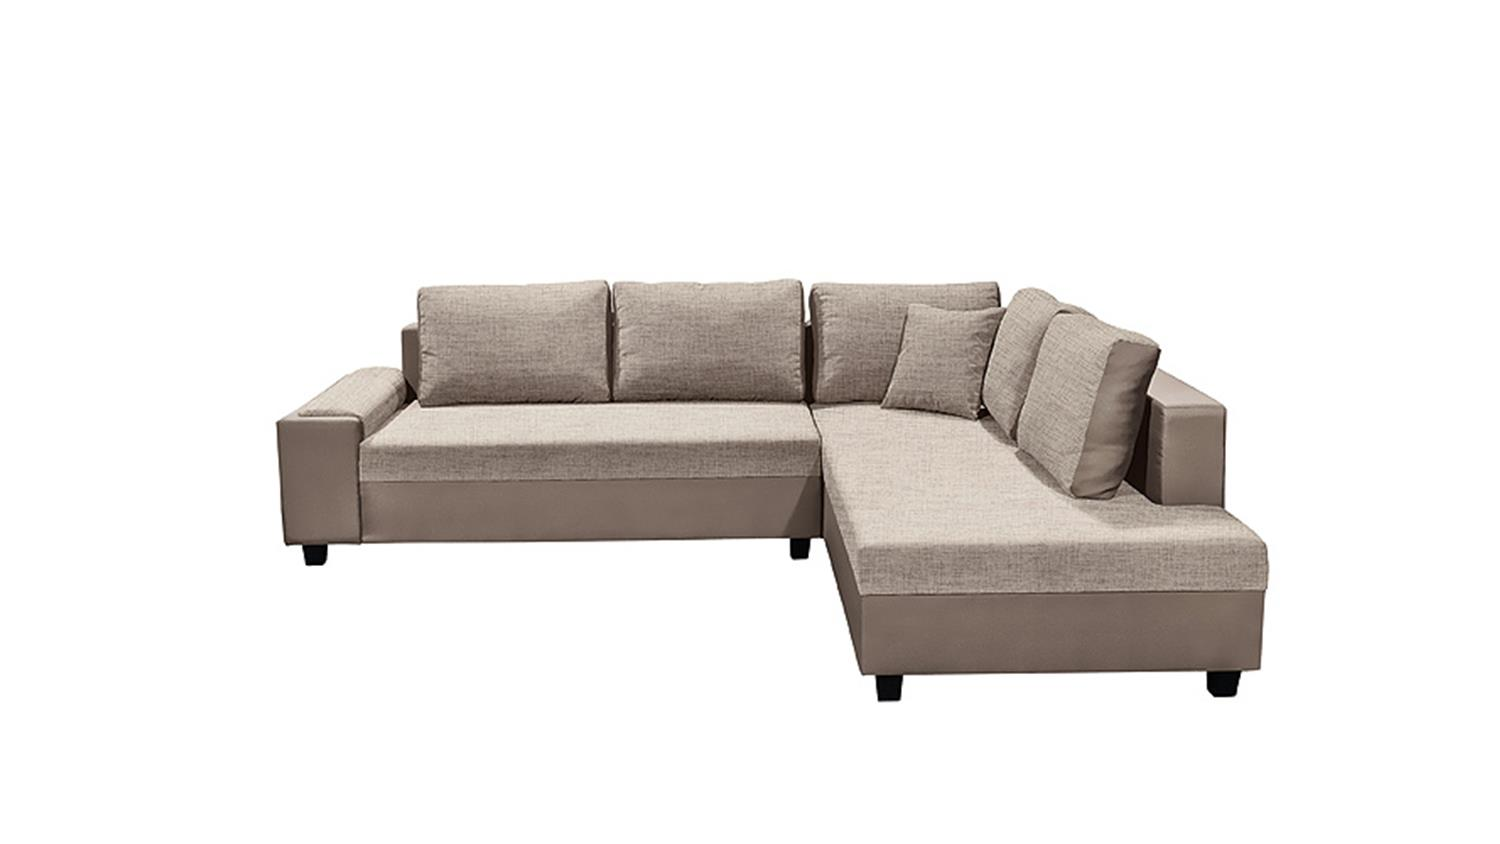 ecksofa stoff braun beige 3 sitzer sofa couch eckcouch. Black Bedroom Furniture Sets. Home Design Ideas